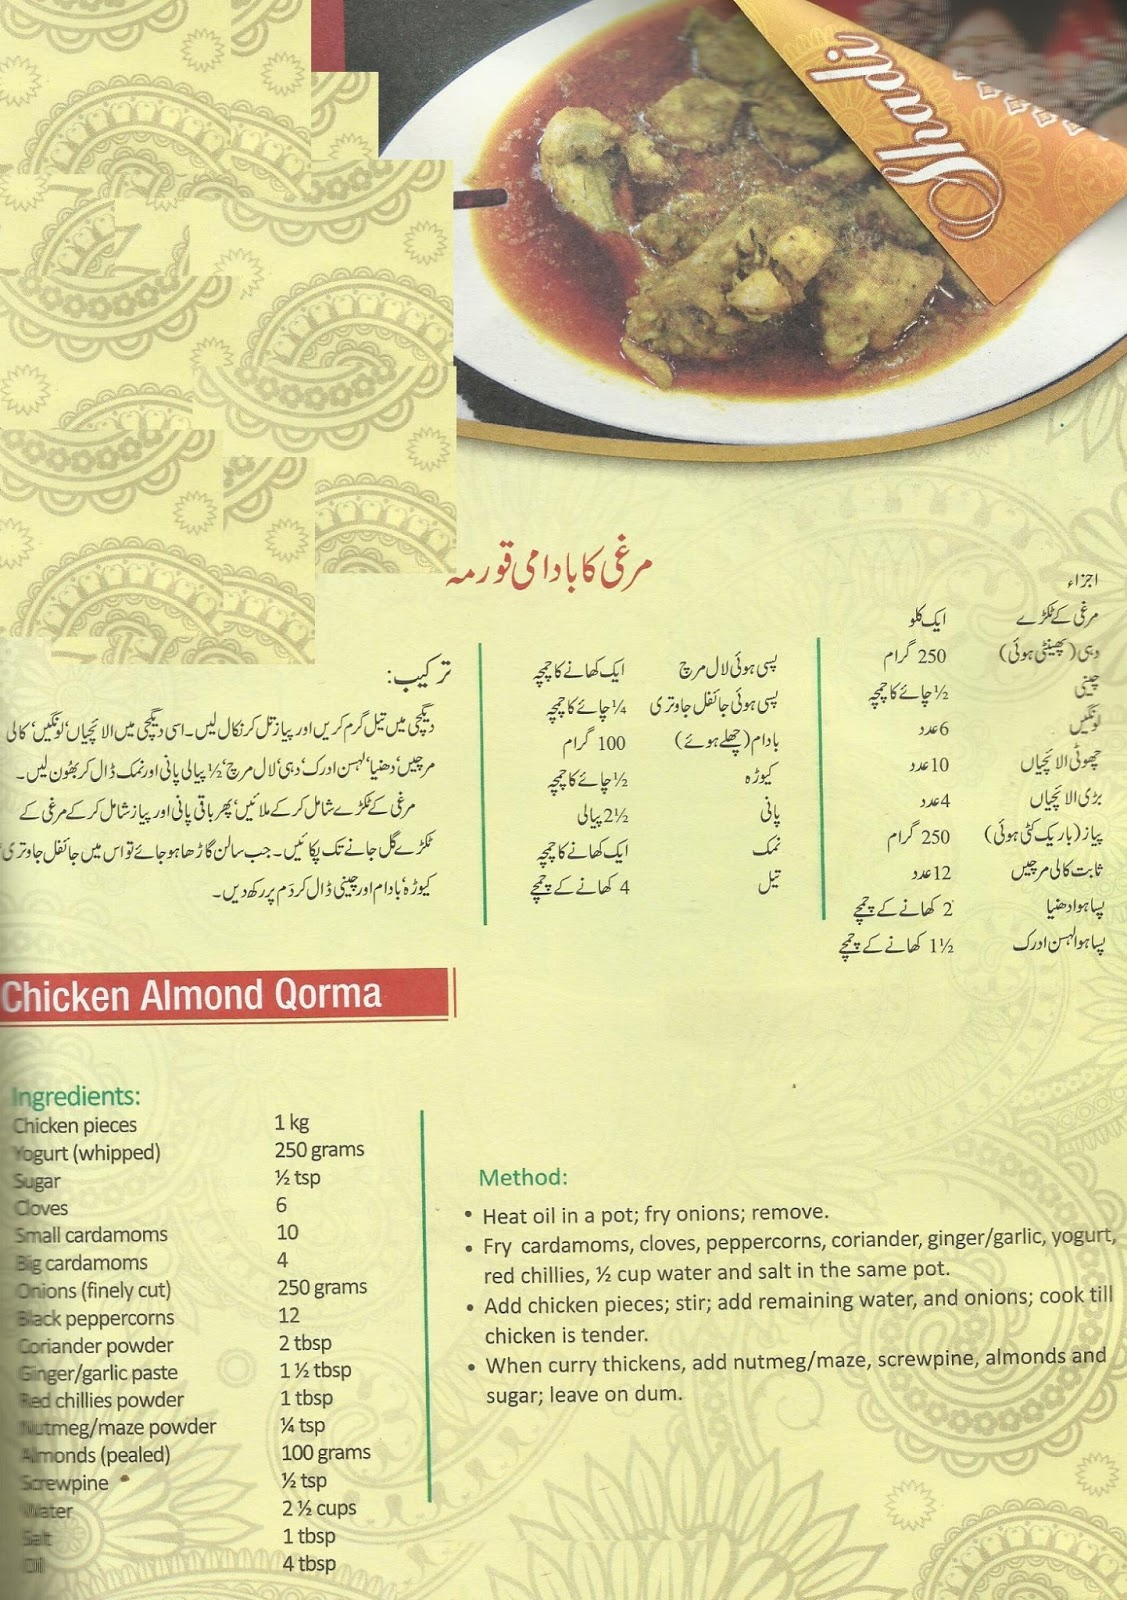 What is the Meaning of recipe in Urdu - DriverLayer Search Engine